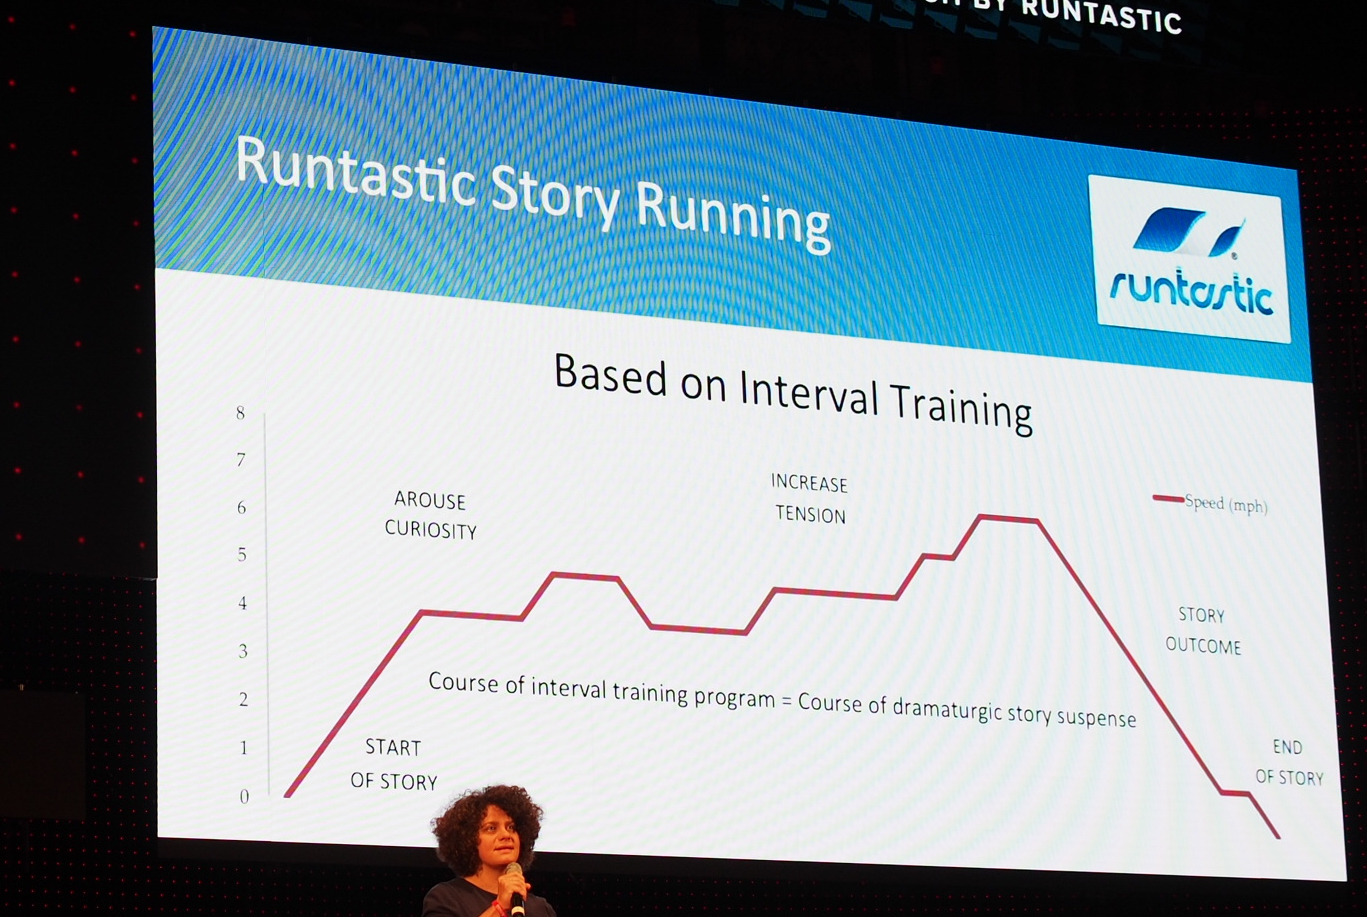 Runtastic Story Running structure